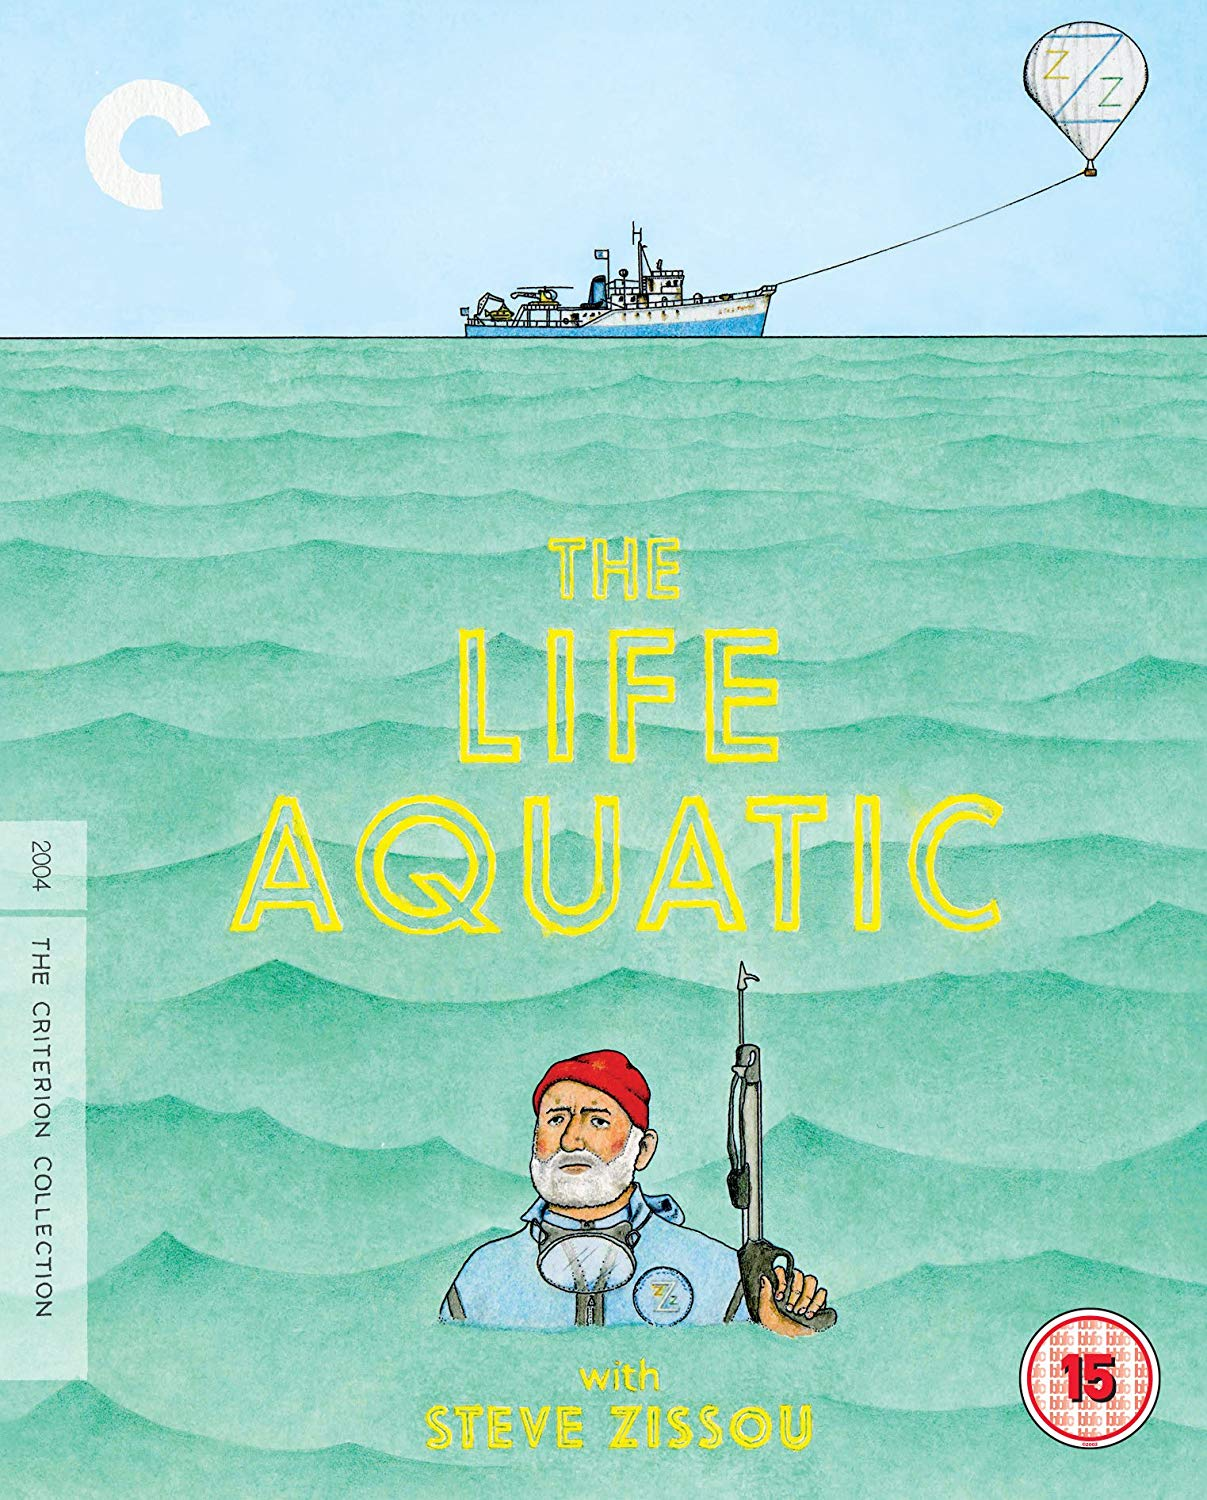 Blu-ray: The Life Aquatic with Steve Zissou